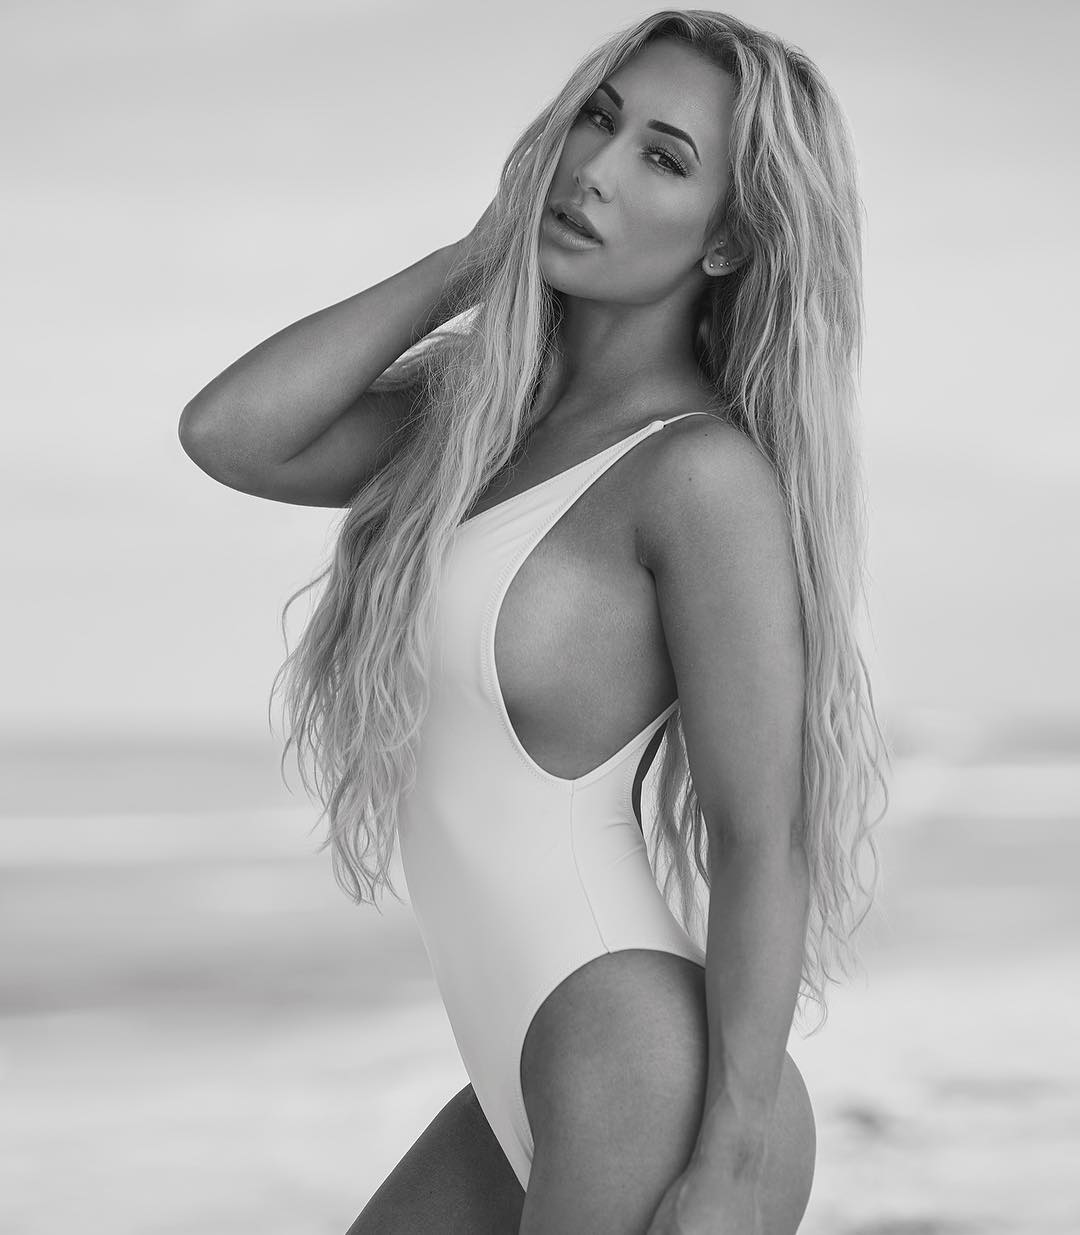 carmella white swimsuit